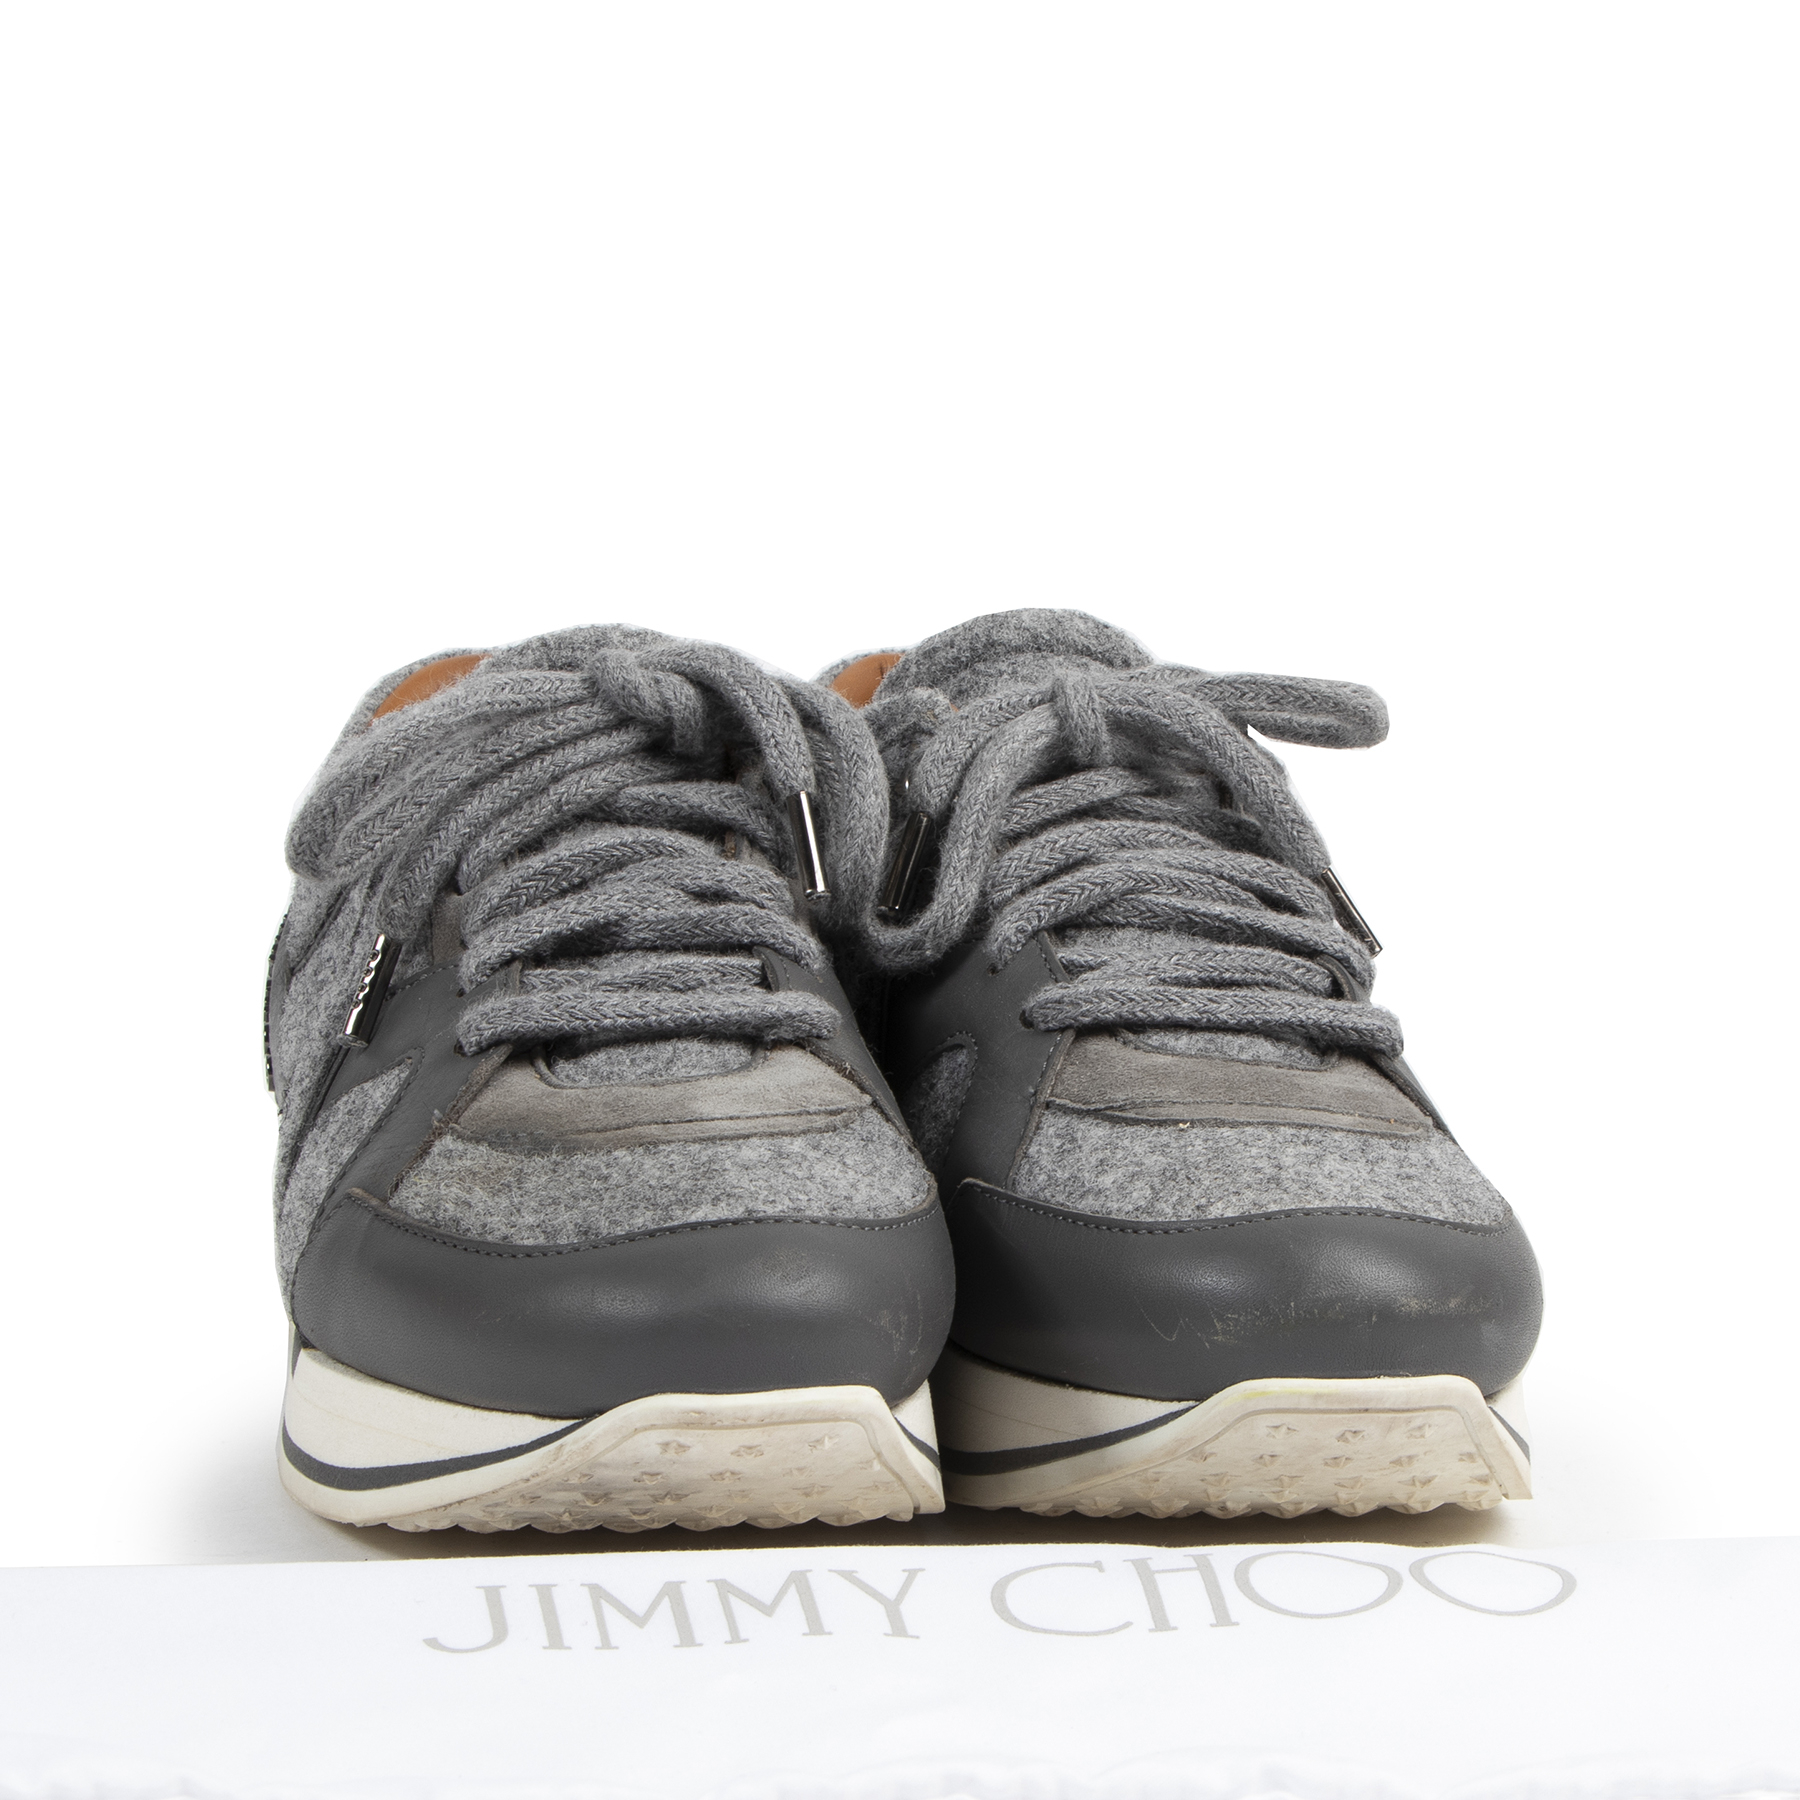 Authentic secondhand Jimmy Choo sneakers designer bags luxury vintage webshop fashion safe secure online shopping designer brands